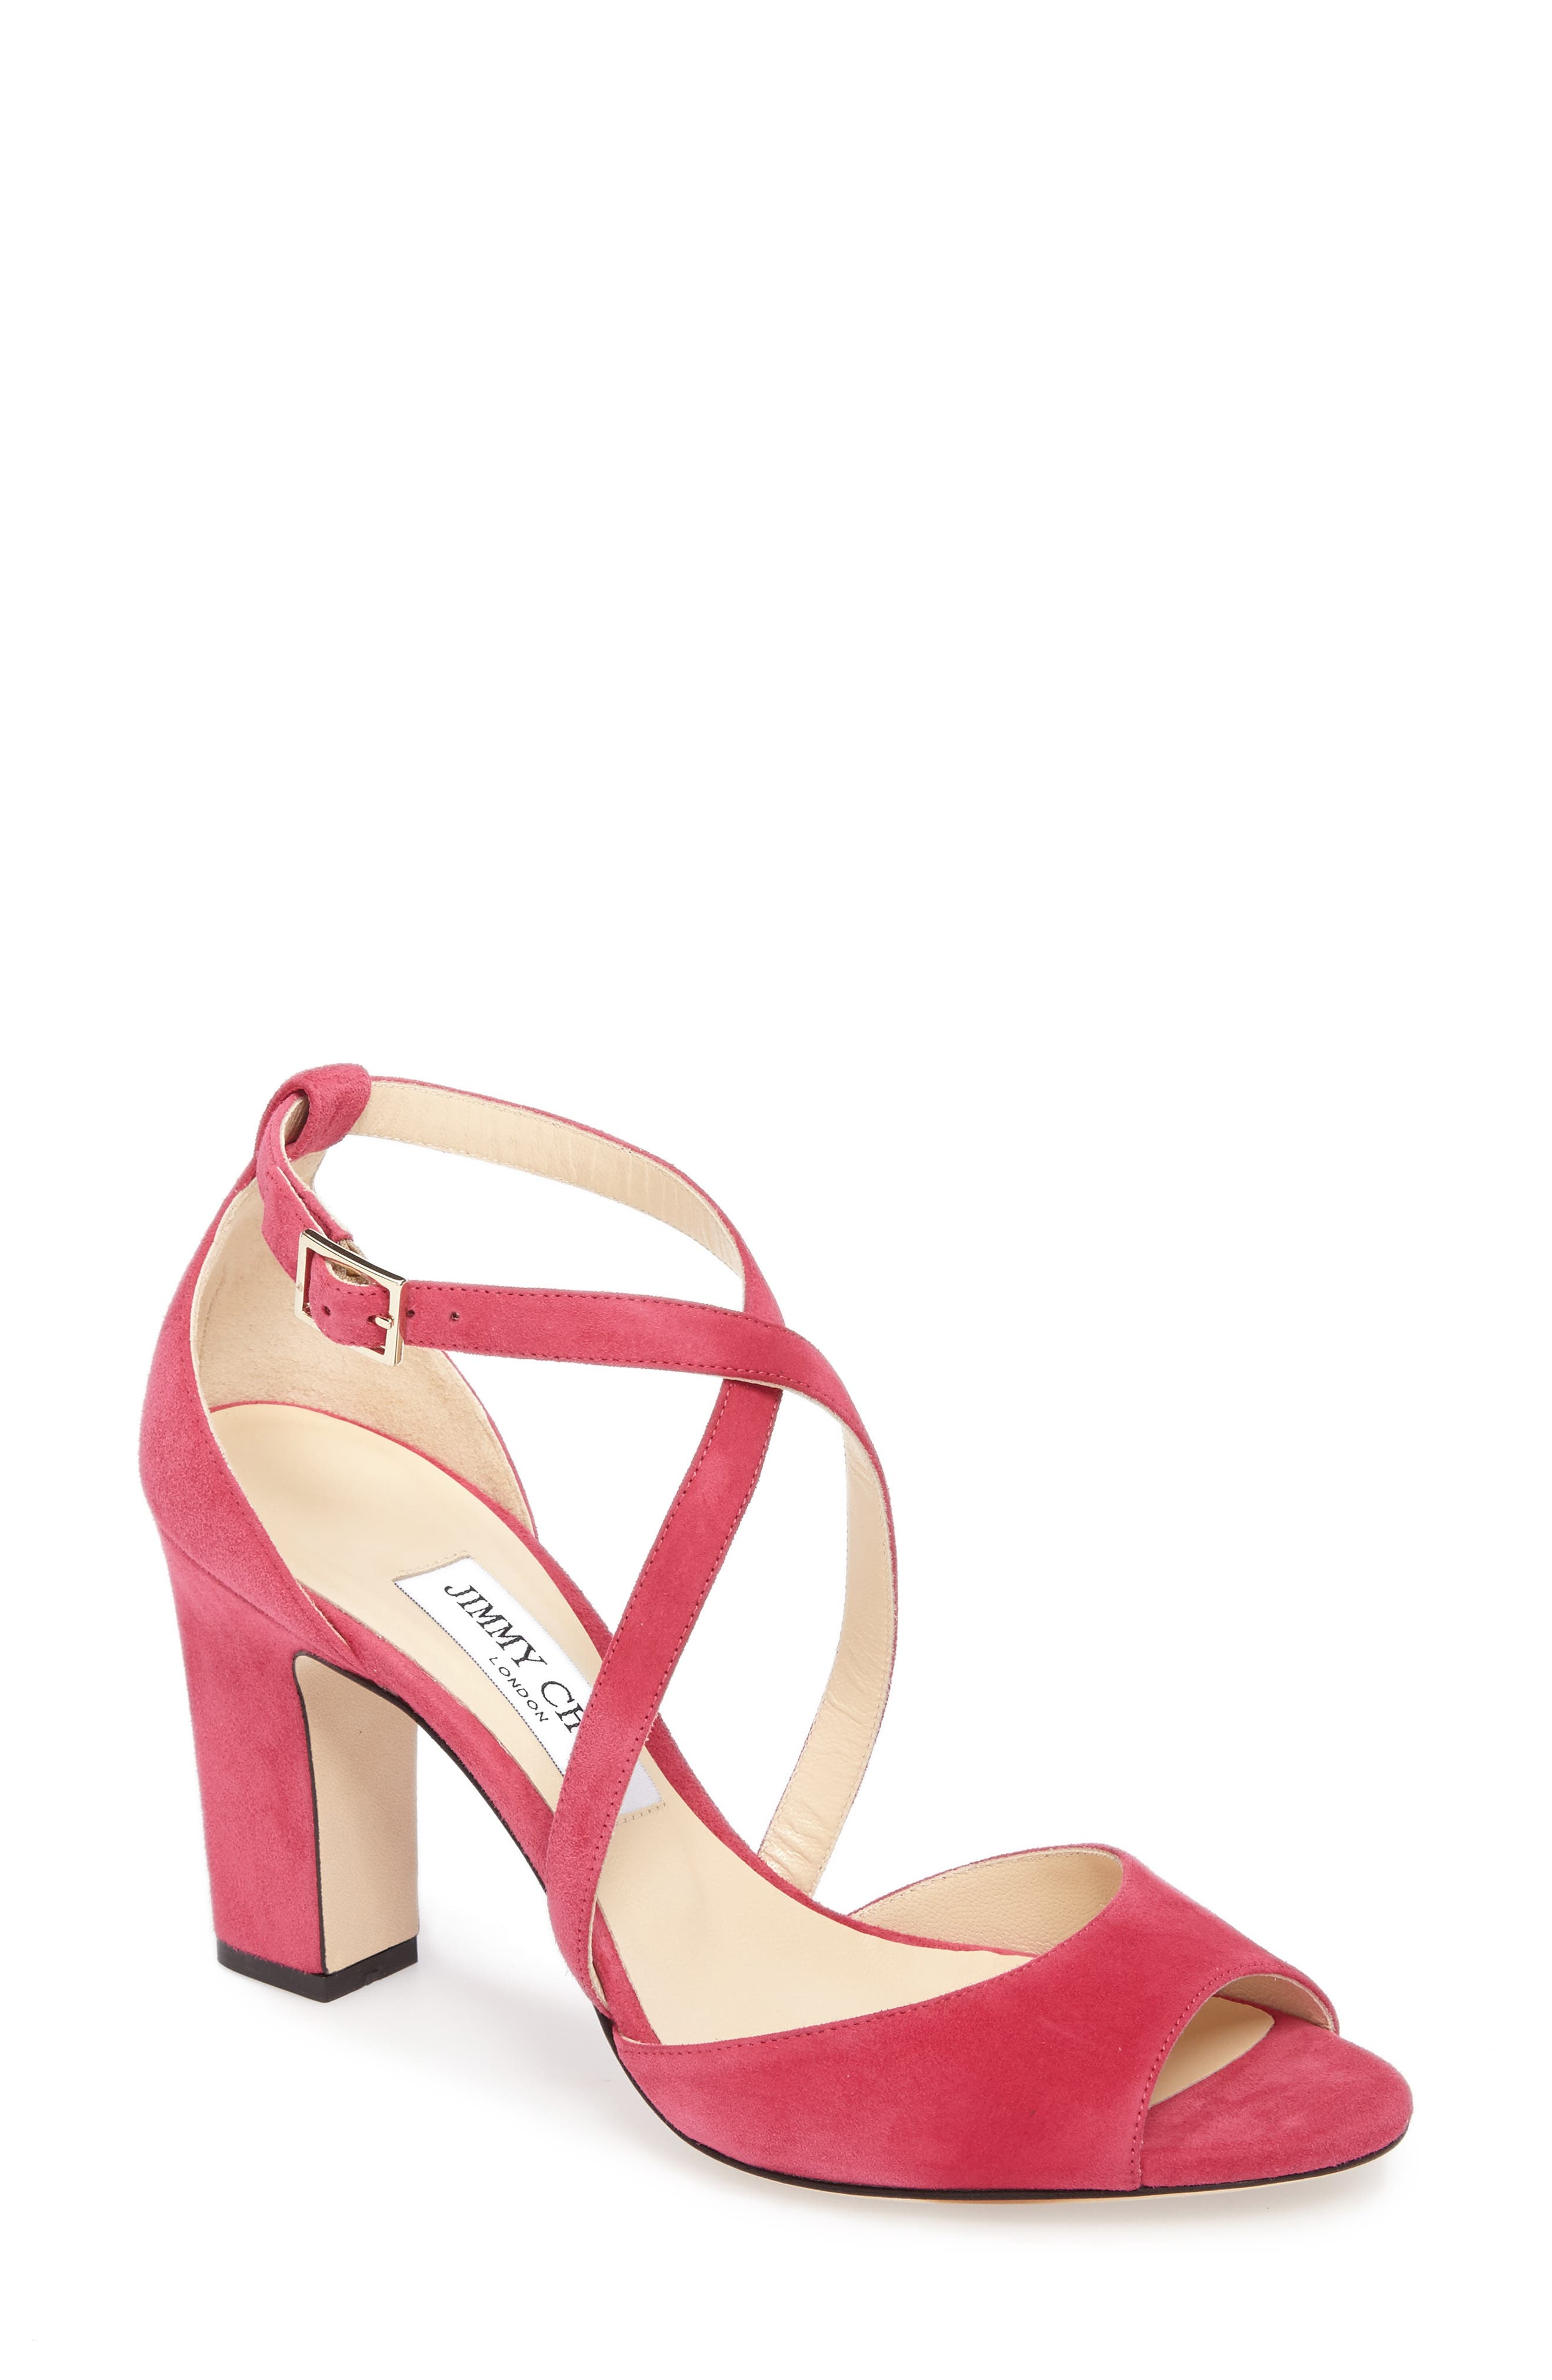 Alternate Image 1 Selected - Jimmy Choo Carrie Sandal (Women)